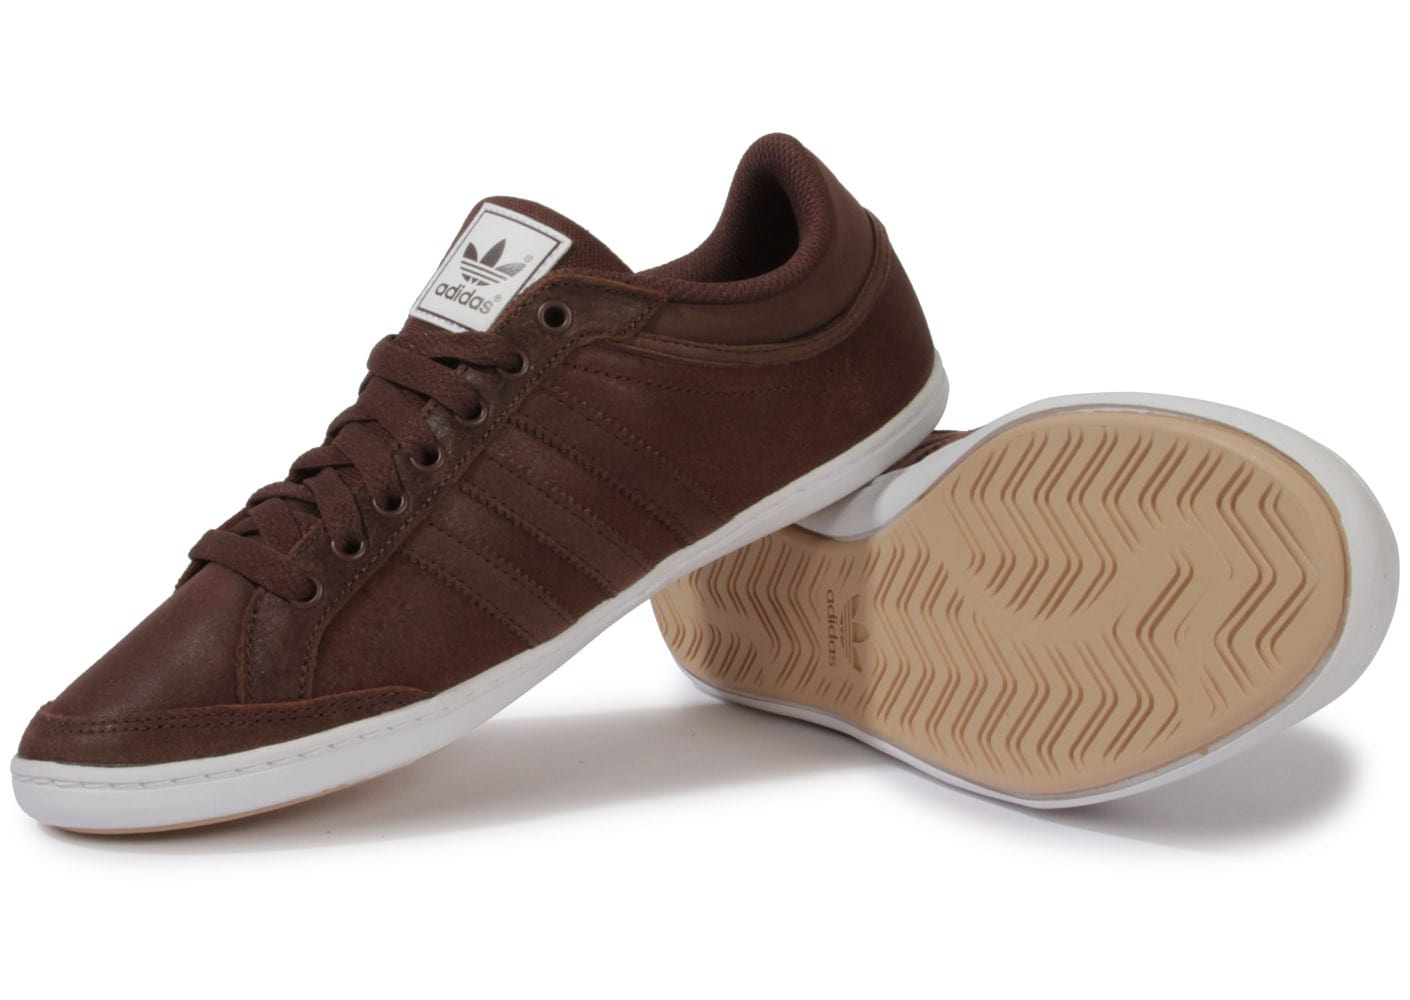 adidas plimcana marron adidas plimcana 2 0 lo marron. Black Bedroom Furniture Sets. Home Design Ideas